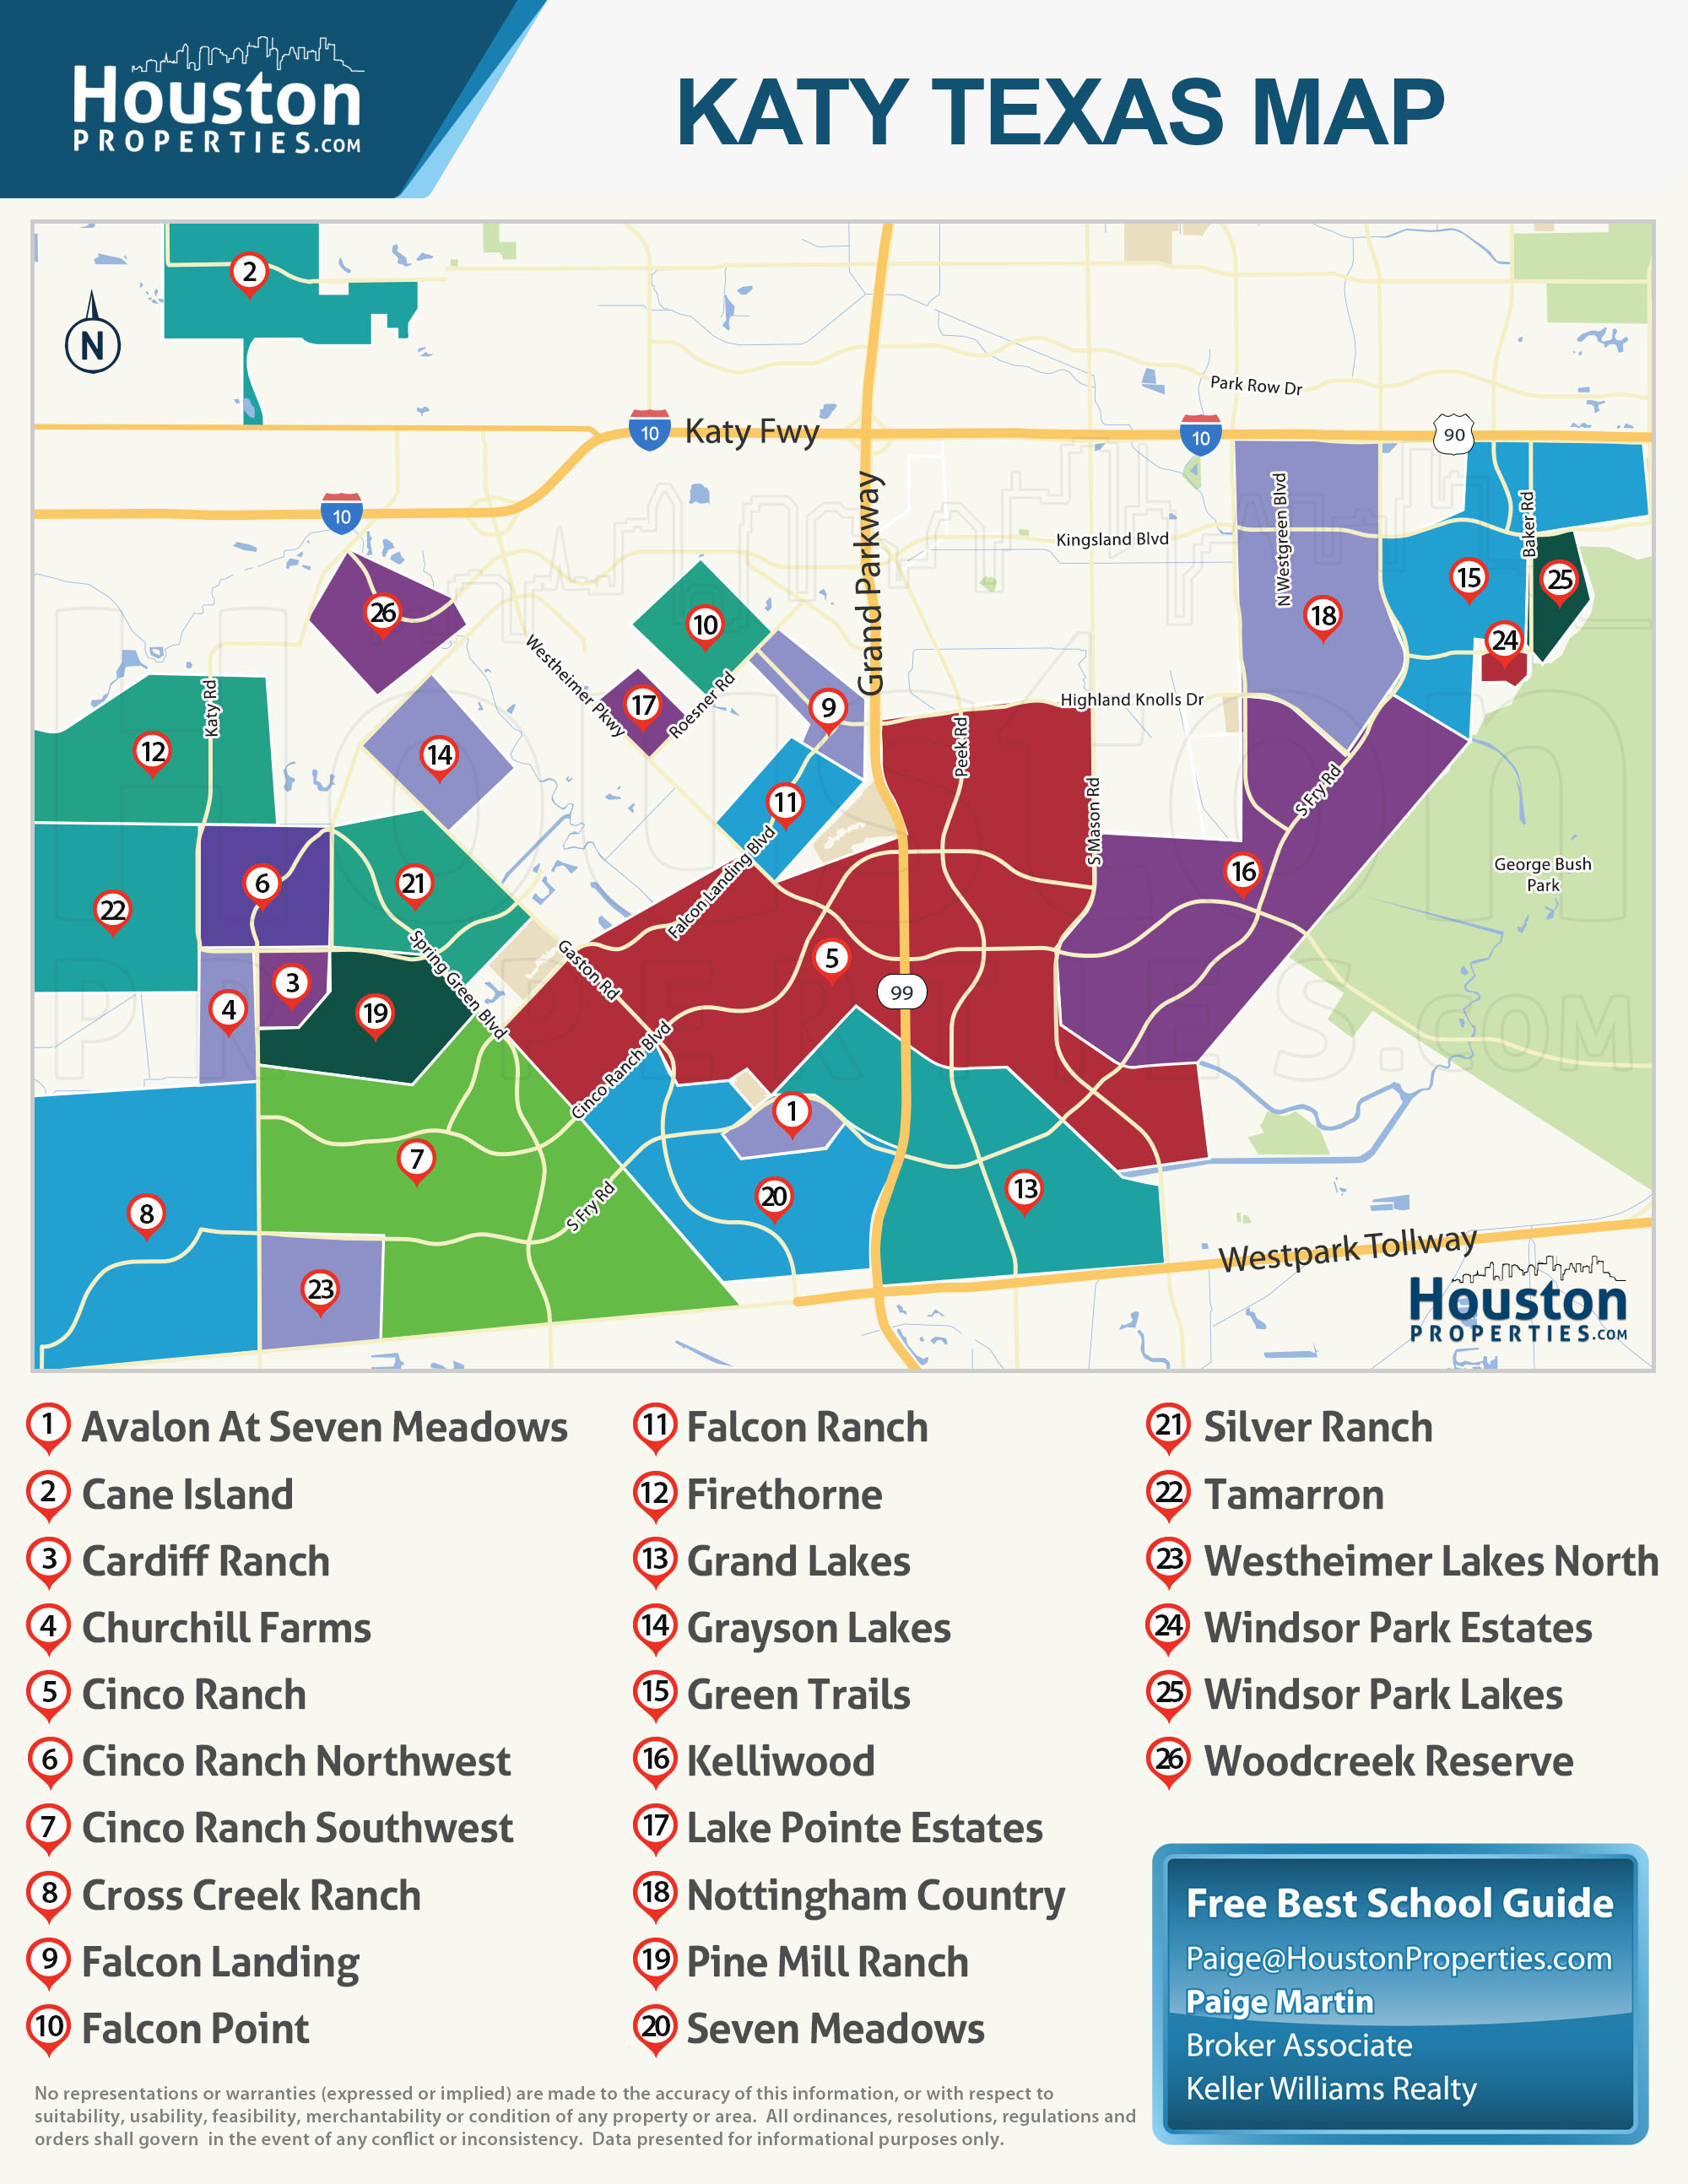 Katy Houston Neighborhood Map